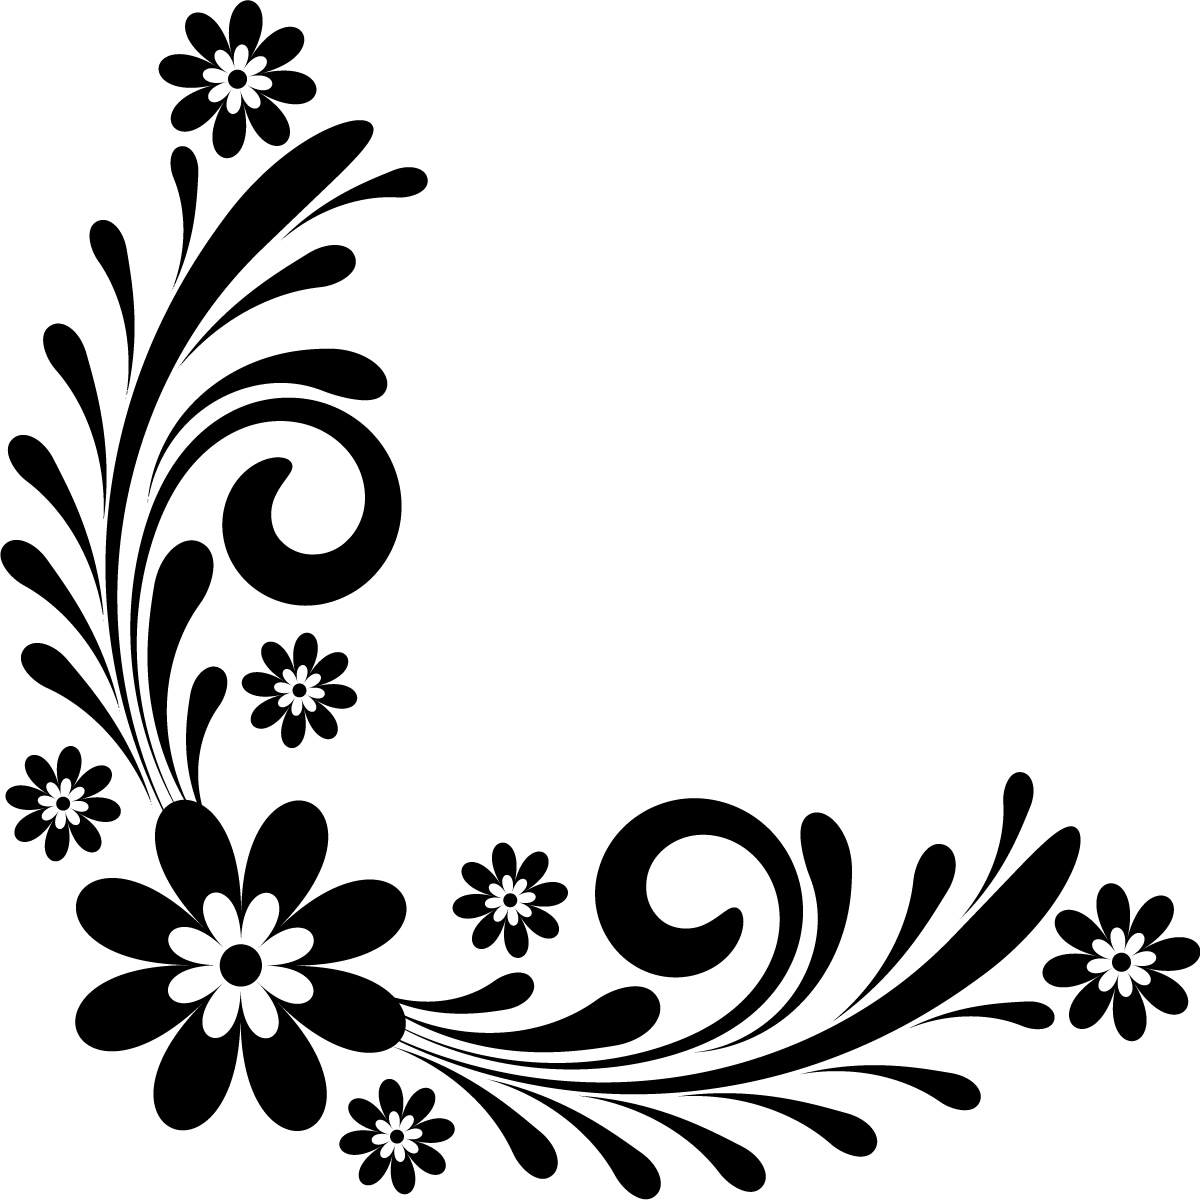 1200x1200 Flower Corner Border Designs Tattoos Pinterest Headboard